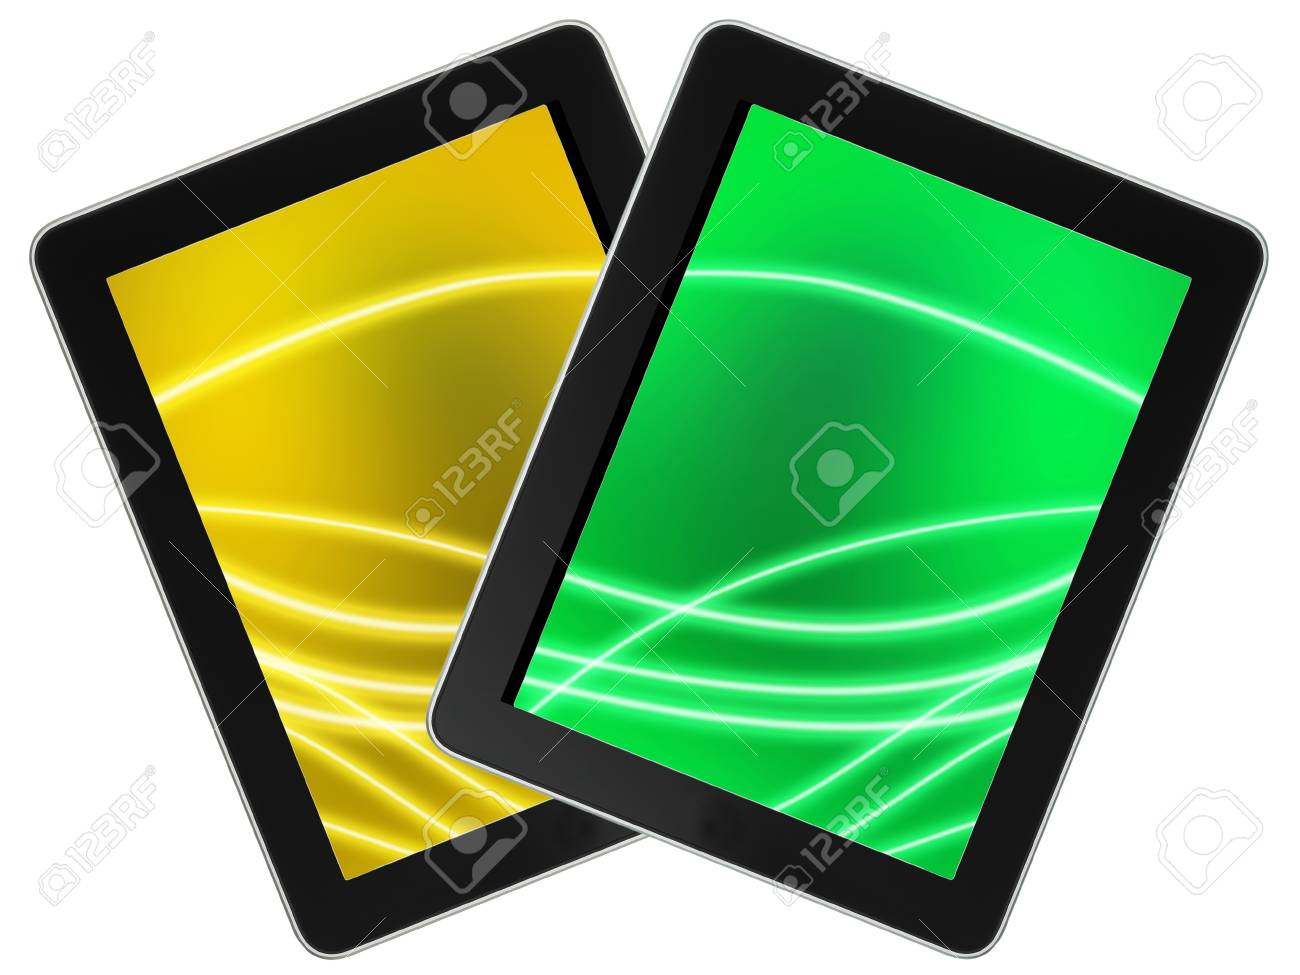 Touch screen device isolate on white background Stock Photo - 18052841